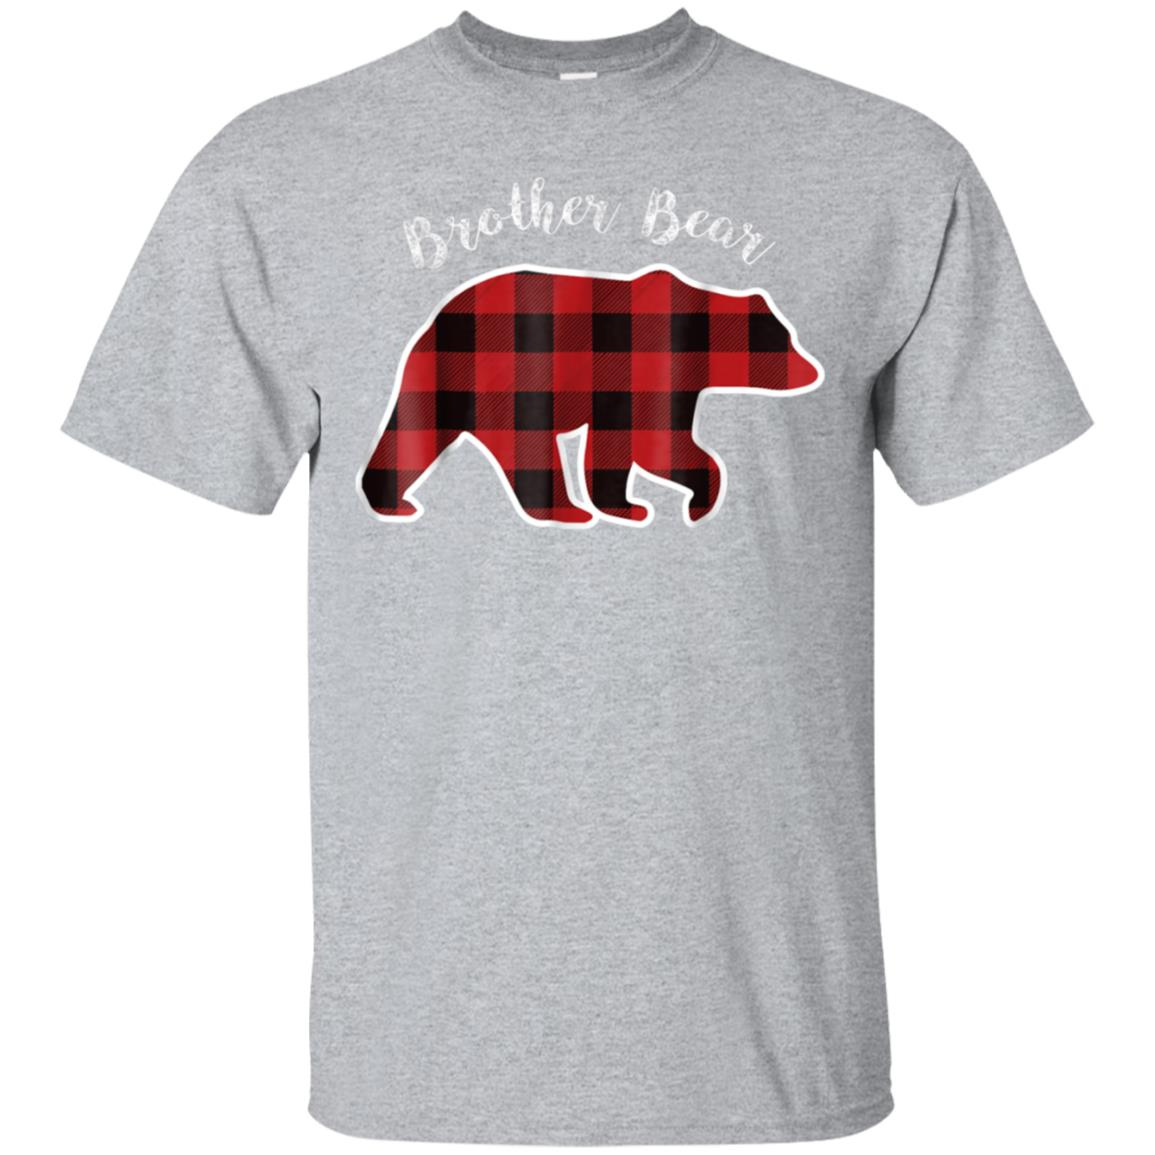 BROTHER BEAR  Men Red Plaid Christmas Pajama Family Gift 99promocode